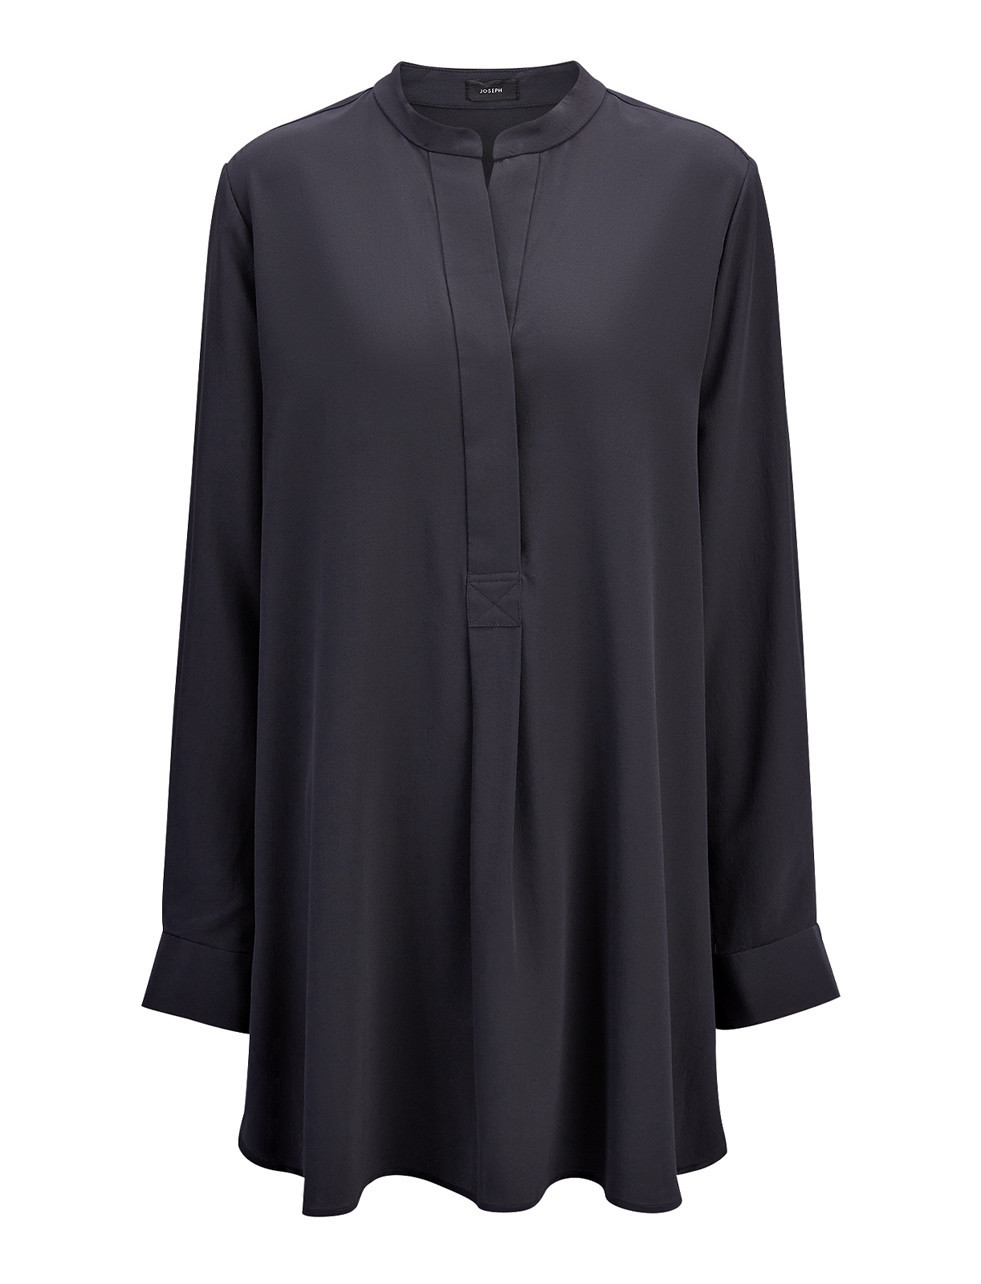 Crepe De Chine Dara Blouse In Midnight Blue - pattern: plain; length: below the bottom; style: blouse; predominant colour: navy; occasions: evening; neckline: collarstand & mandarin with v-neck; fibres: silk - 100%; fit: body skimming; sleeve length: long sleeve; sleeve style: standard; texture group: crepes; pattern type: fabric; season: s/s 2016; wardrobe: event